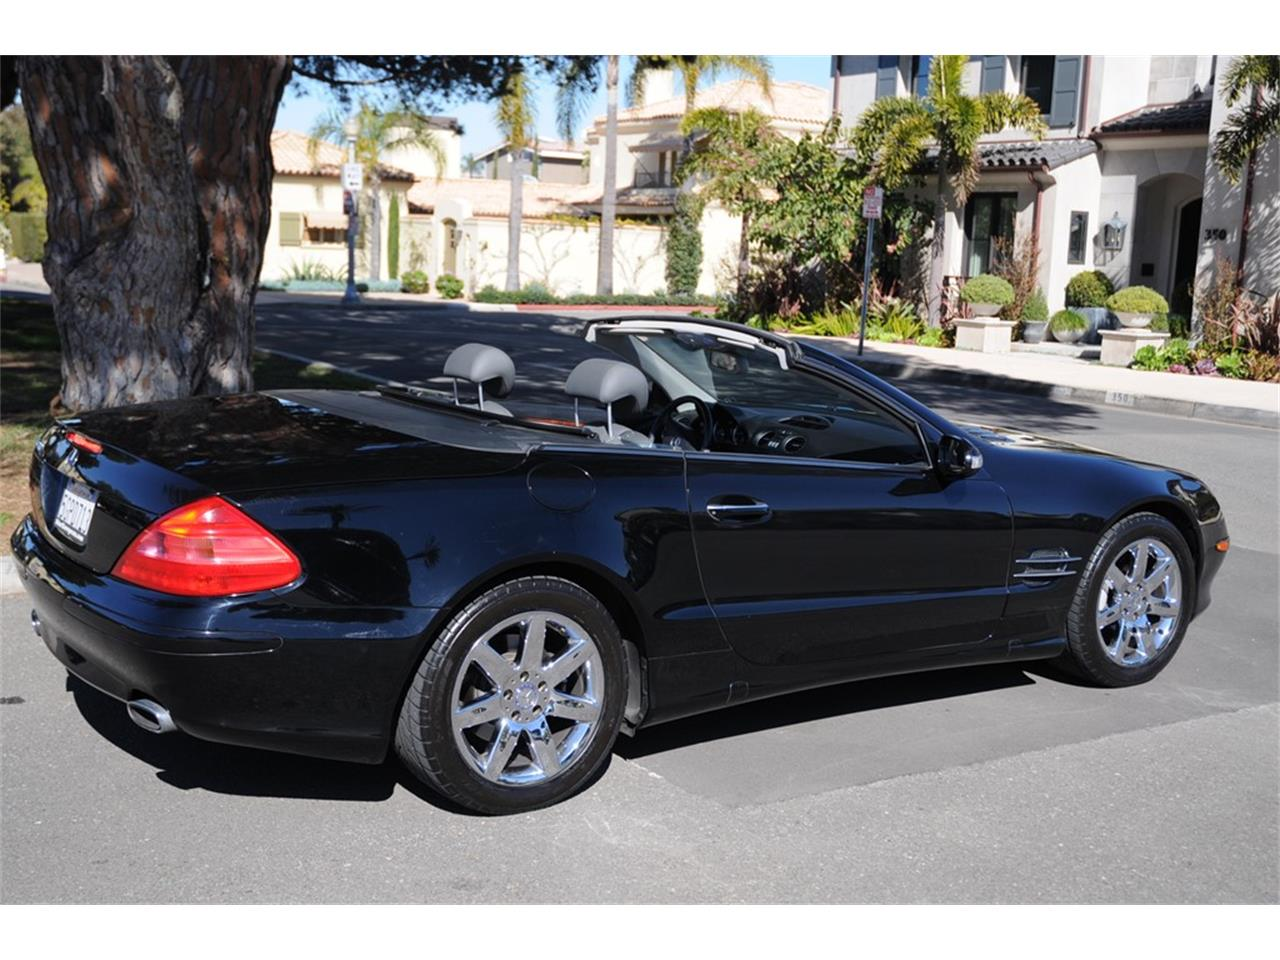 2003 Mercedes-Benz SL500 (CC-1300414) for sale in Costa Mesa, California